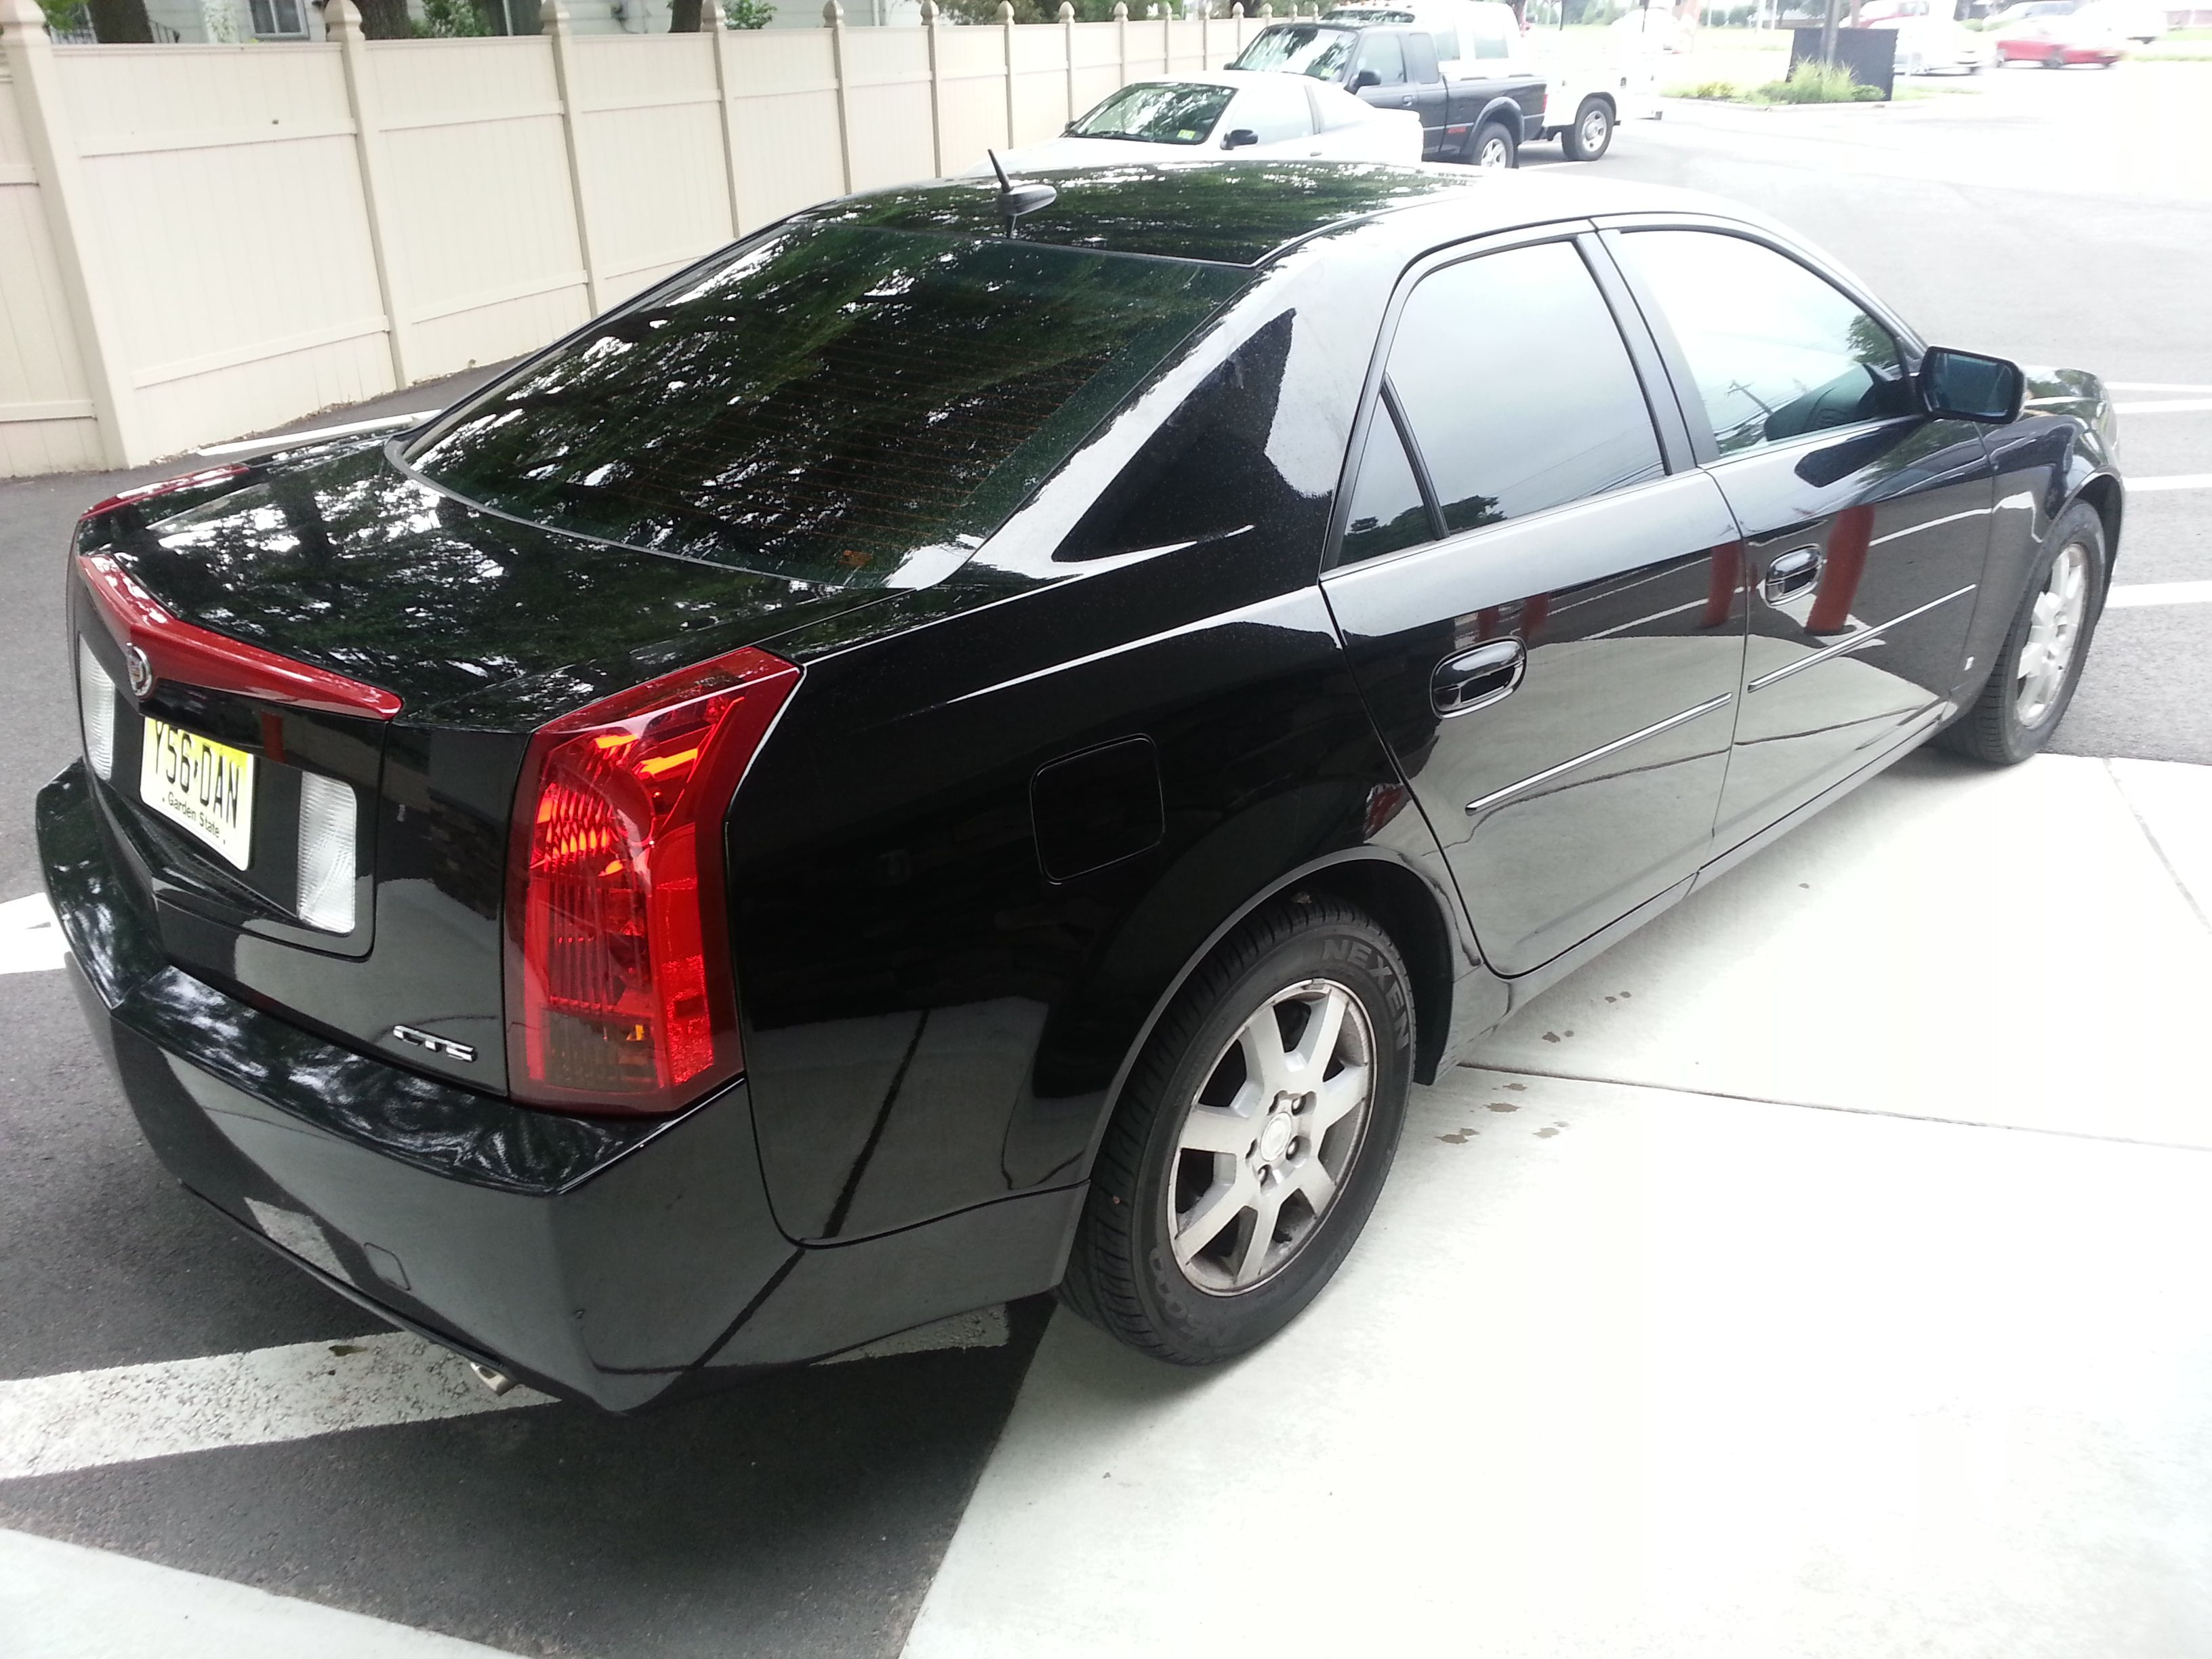 2006 cadillac cts suntek carbon 5 rear section